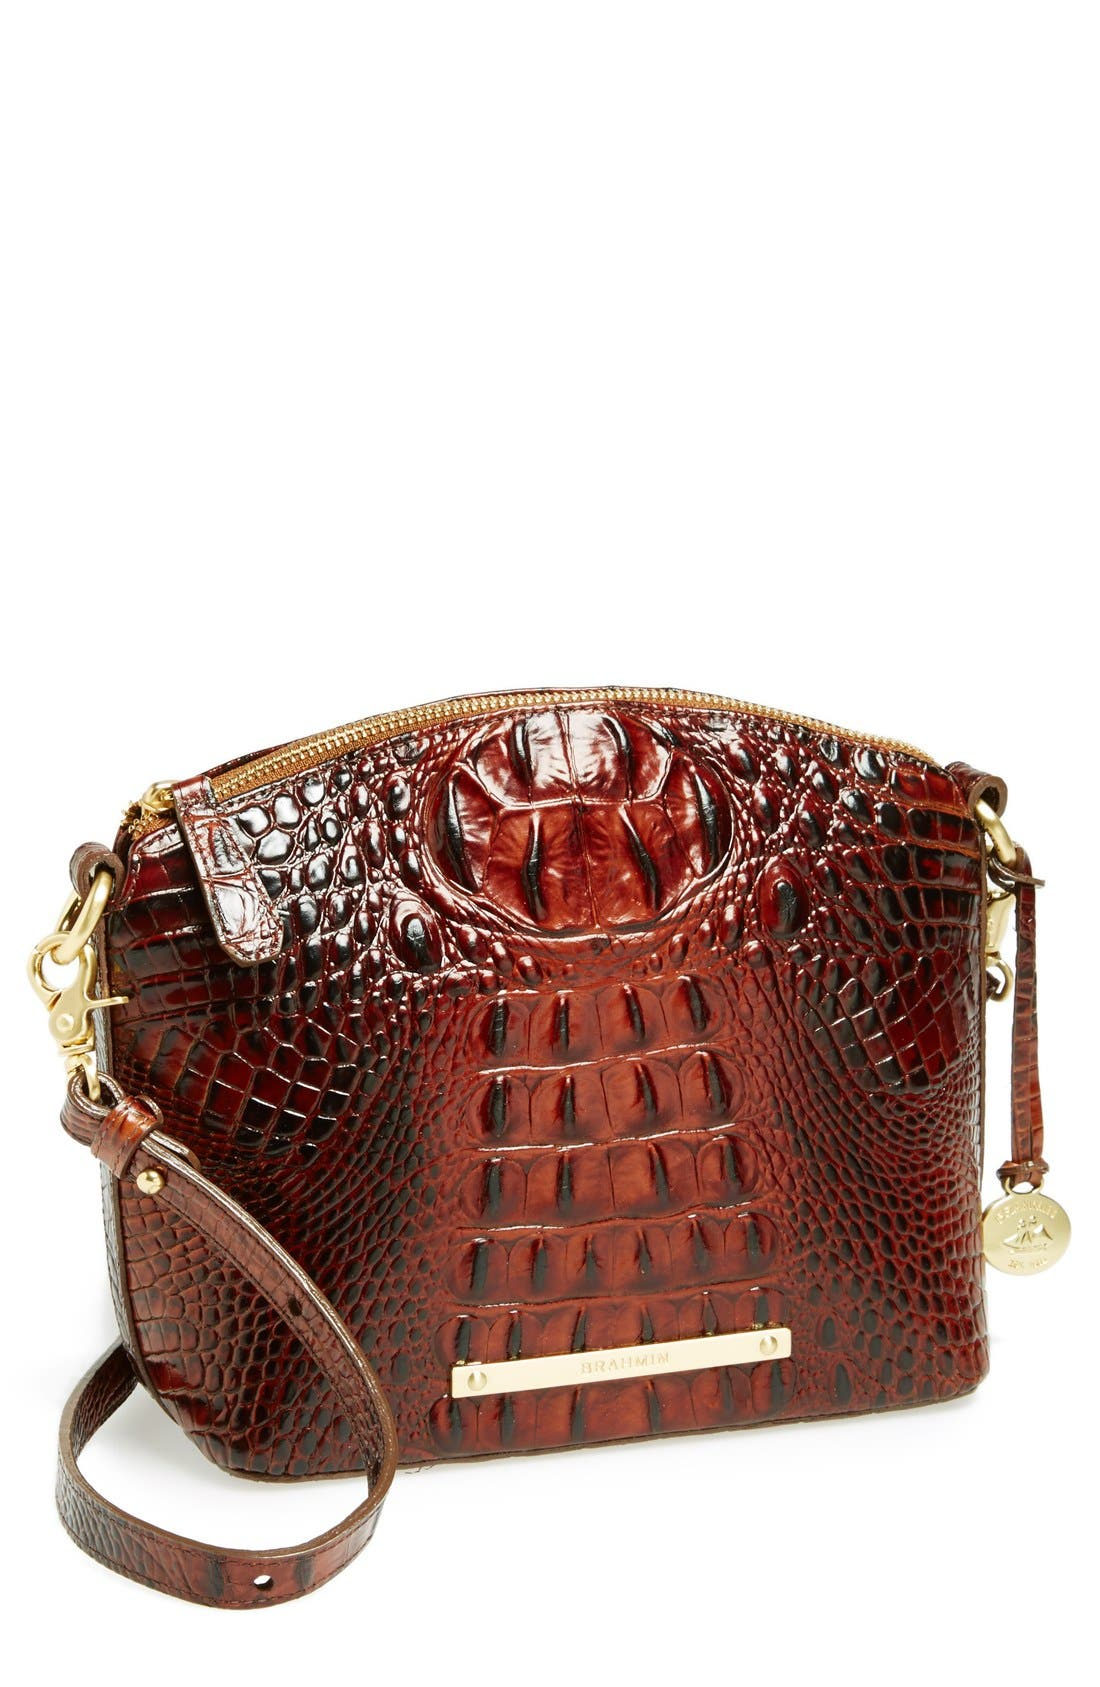 Brahmin 'Mini Duxbury' Crossbody Bag